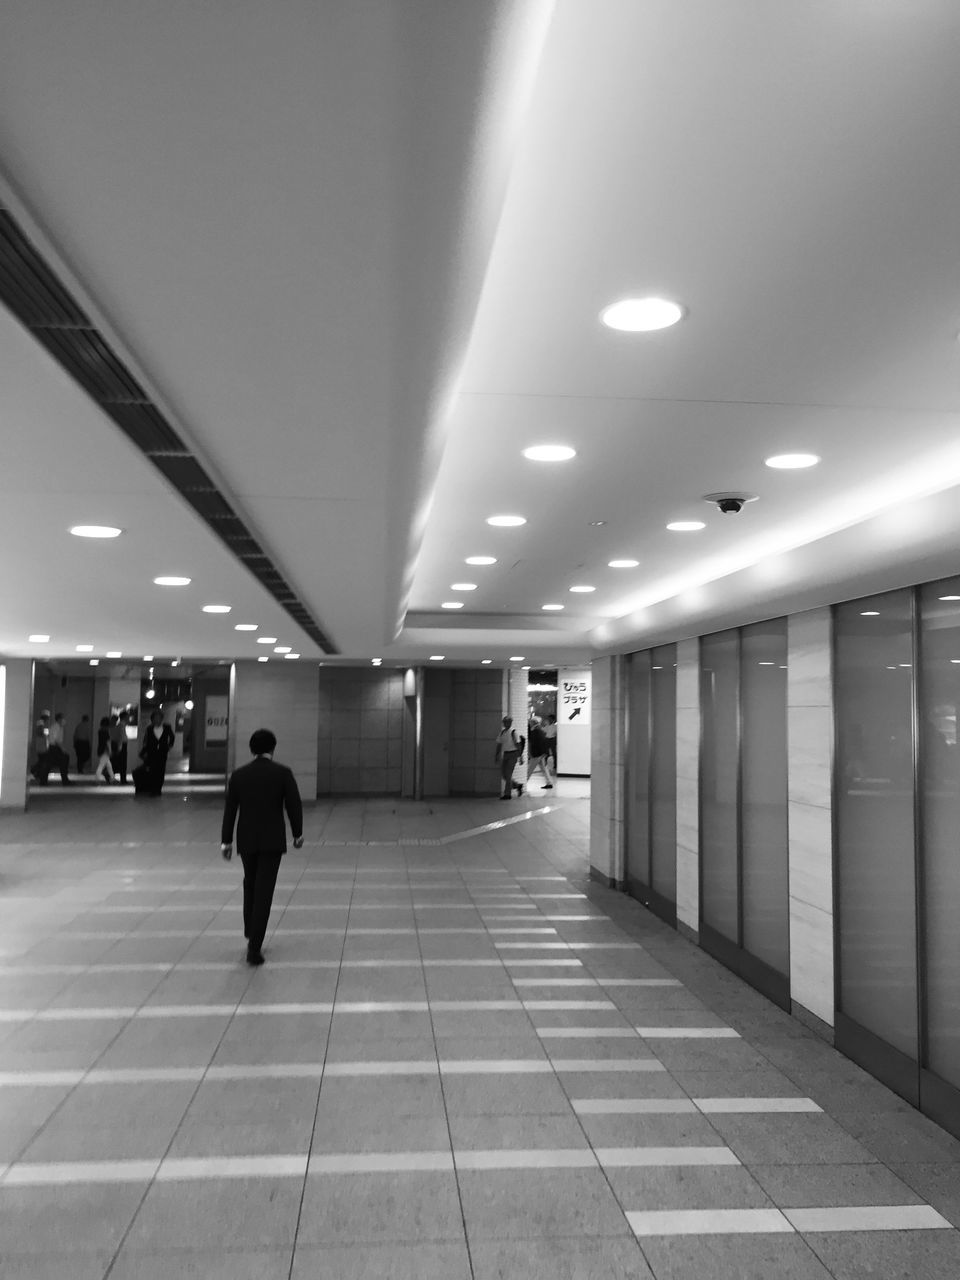 illuminated, ceiling, lighting equipment, indoors, walking, real people, men, modern, architecture, one person, people